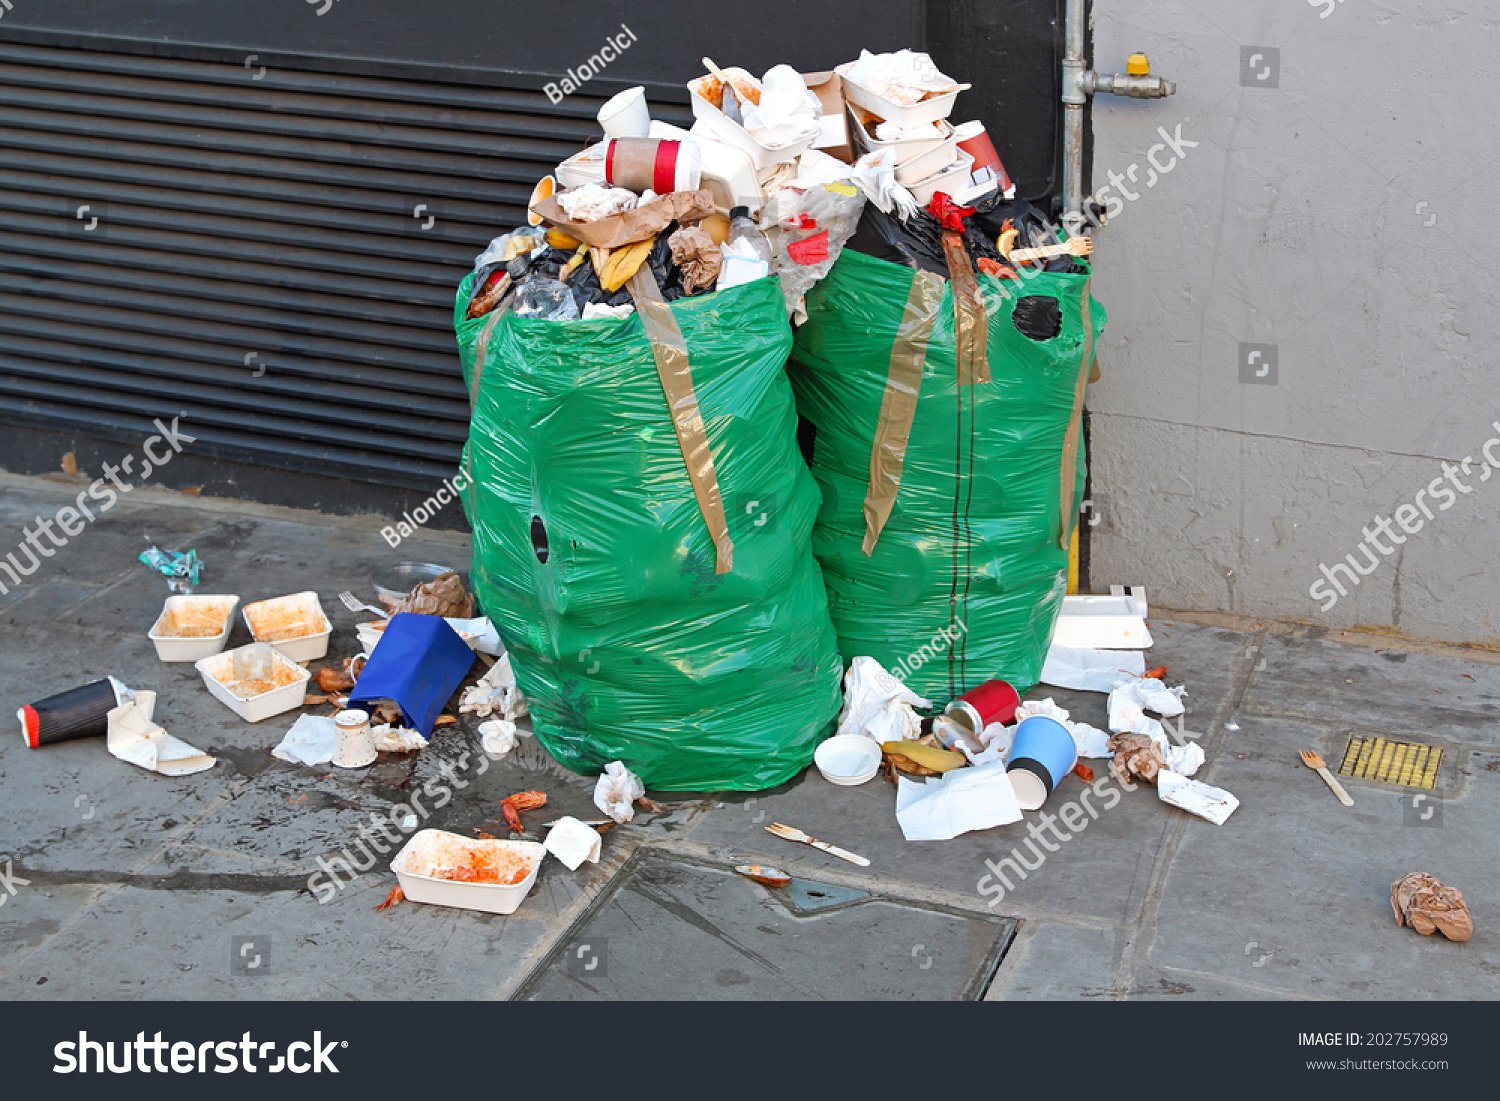 statement of the problem in improper waste disposal Improper waste disposal thesis paper improper waste disposal - effects of improper waste disposal can create environmental problem this research paper explores about waste management and effects chapter one deals problem statement for waste management due to the lack of knowledge of.